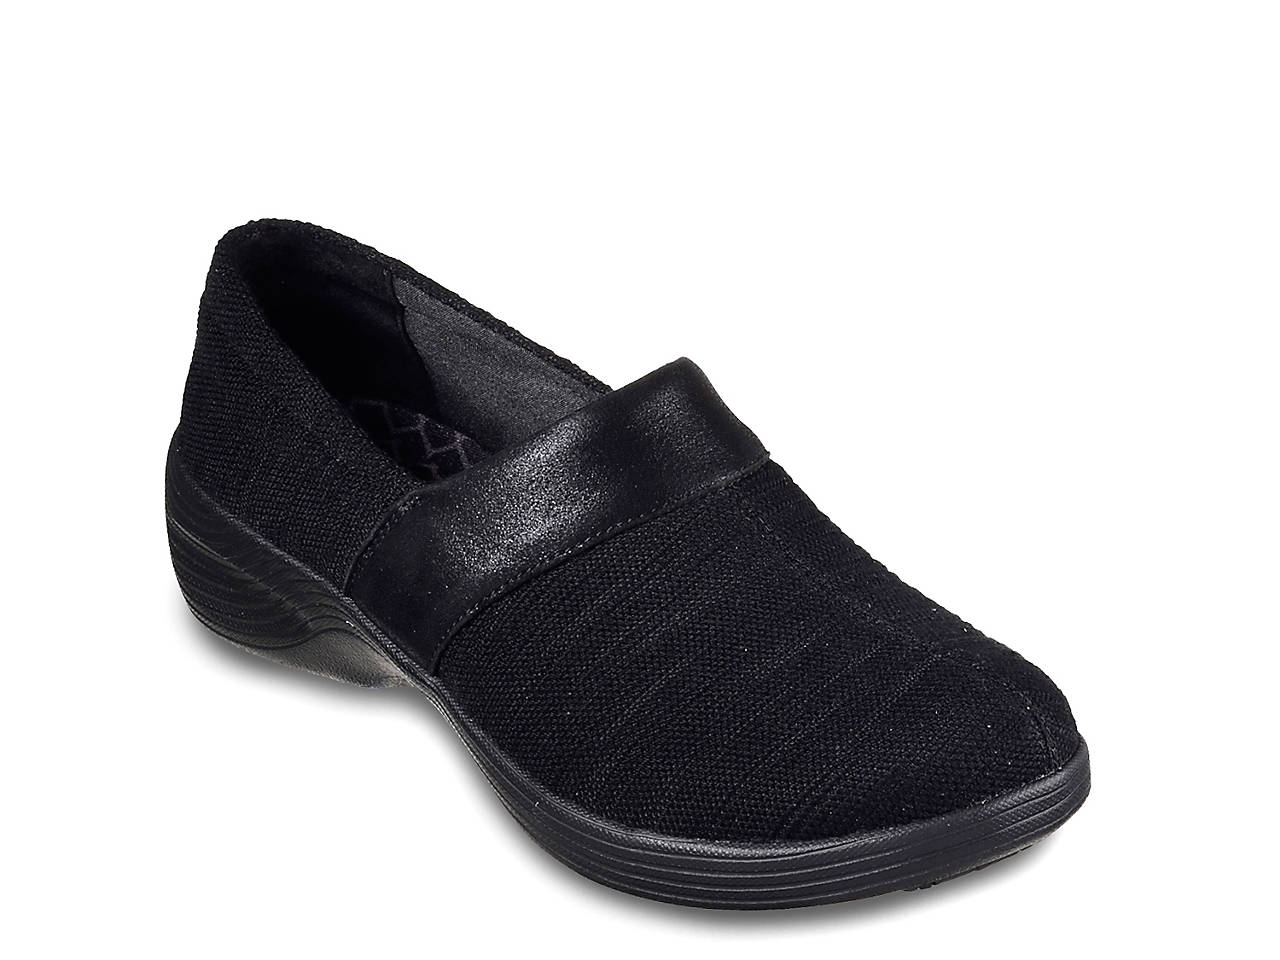 skechers dress shoes womens. relaxed fit gemma space trip clog skechers dress shoes womens